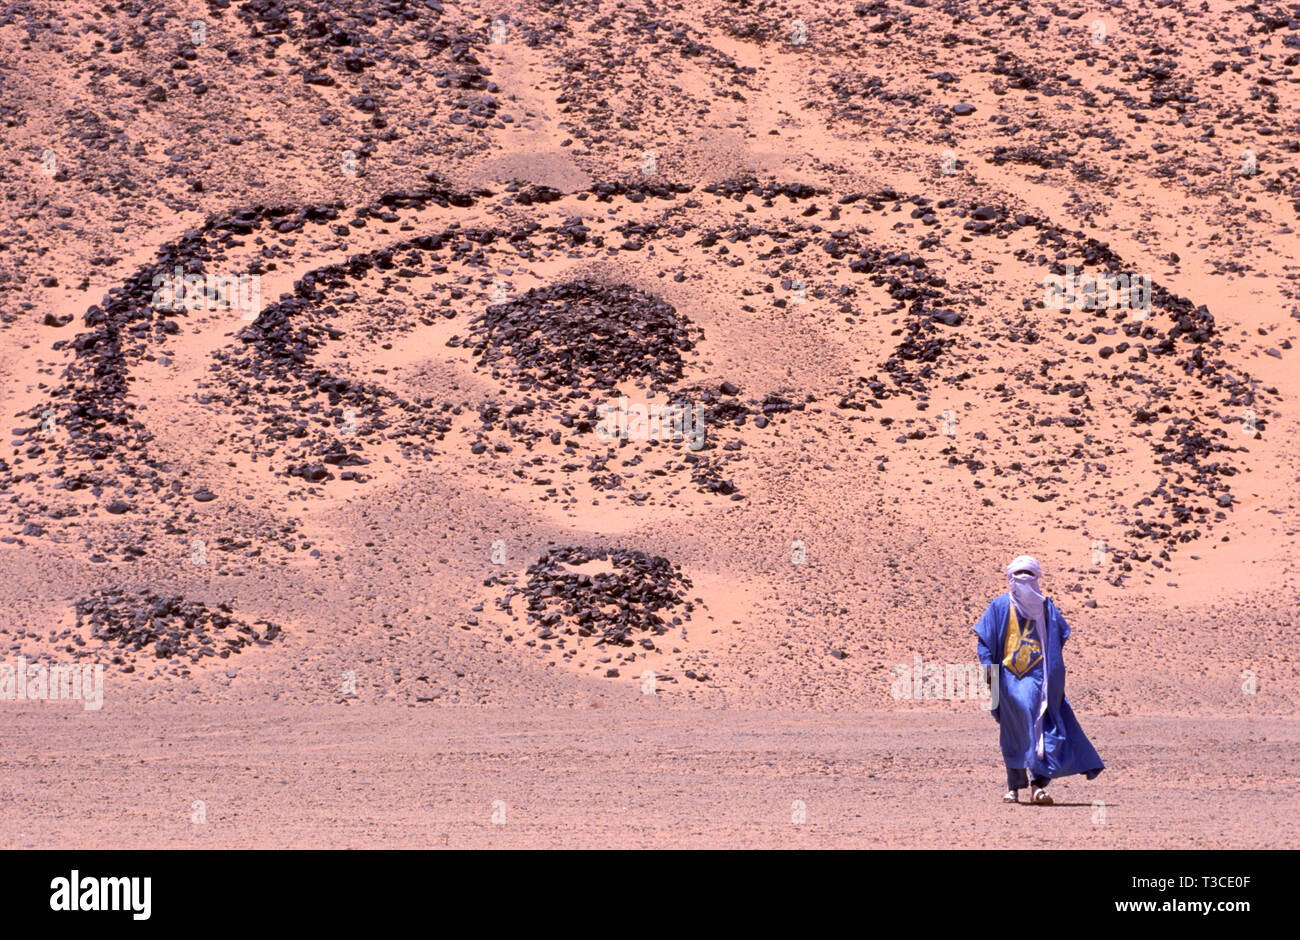 Tuareg man in a traditional costume with a 5000 year old grave in the background in the Sahara in Algeria - Stock Image